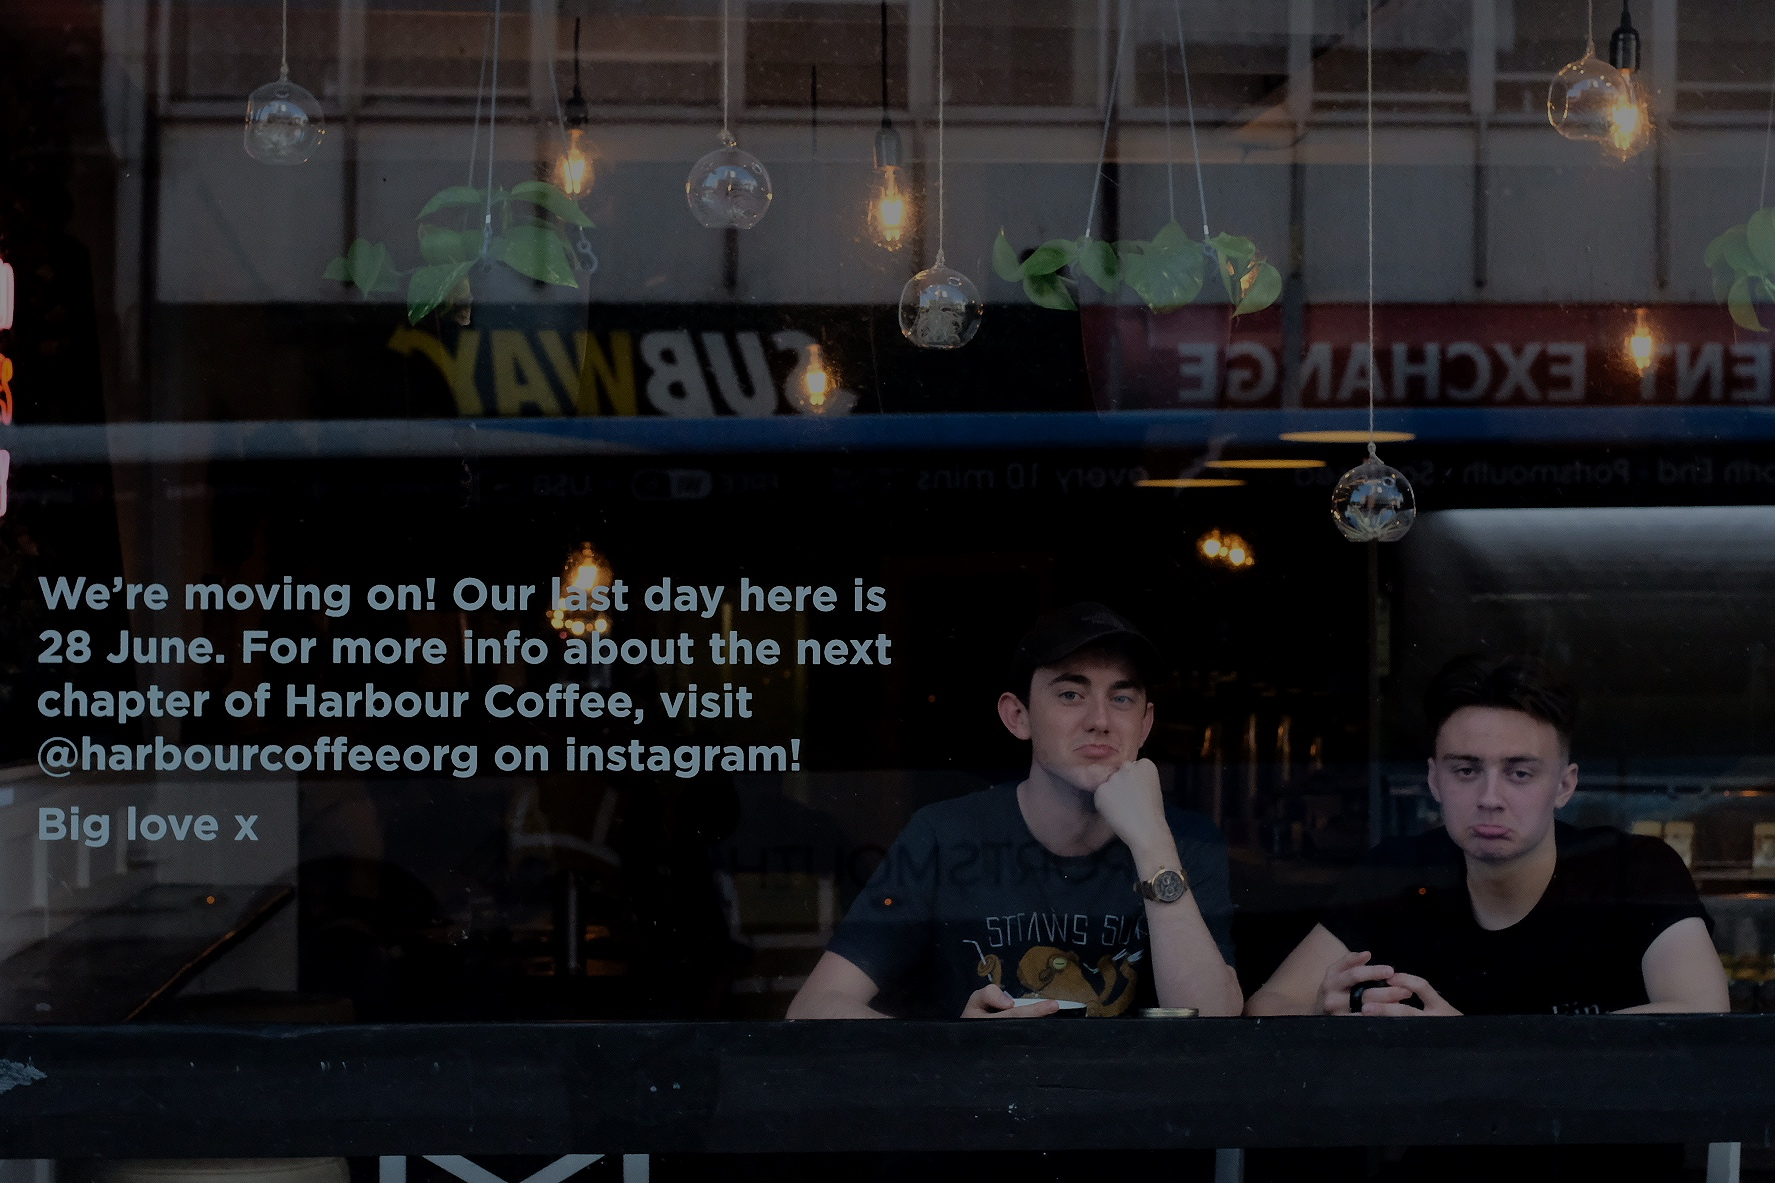 Harbour Coffee - As part of moving from 97 Commercial Road, Harbour Coffee will no longer be open on Commercial Road. Harbour Coffee is being re-imagined as a portable enterprise and will be up and running from early August at our services and visiting events!